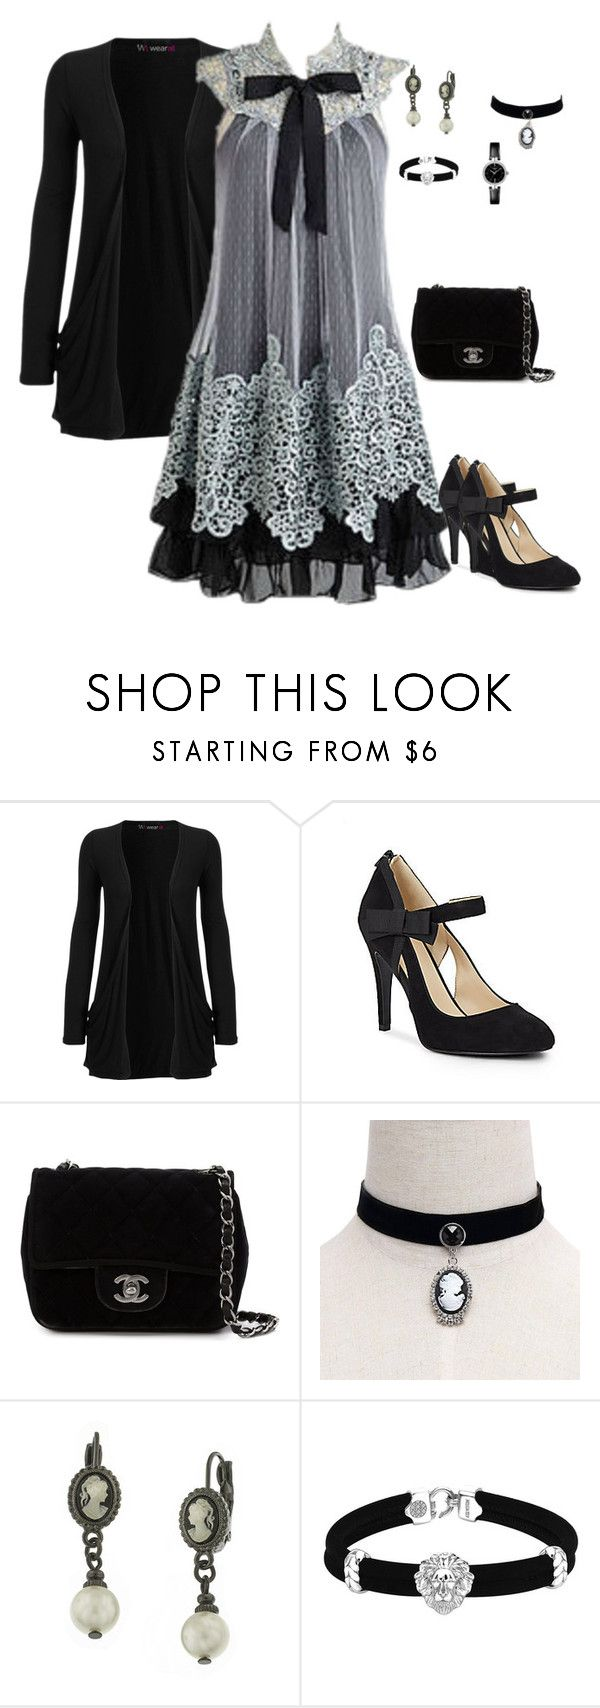 """""""AFDTEGH"""" by charactertickles ❤ liked on Polyvore featuring WearAll, Nine West, Chanel, 1928 and Tissot"""